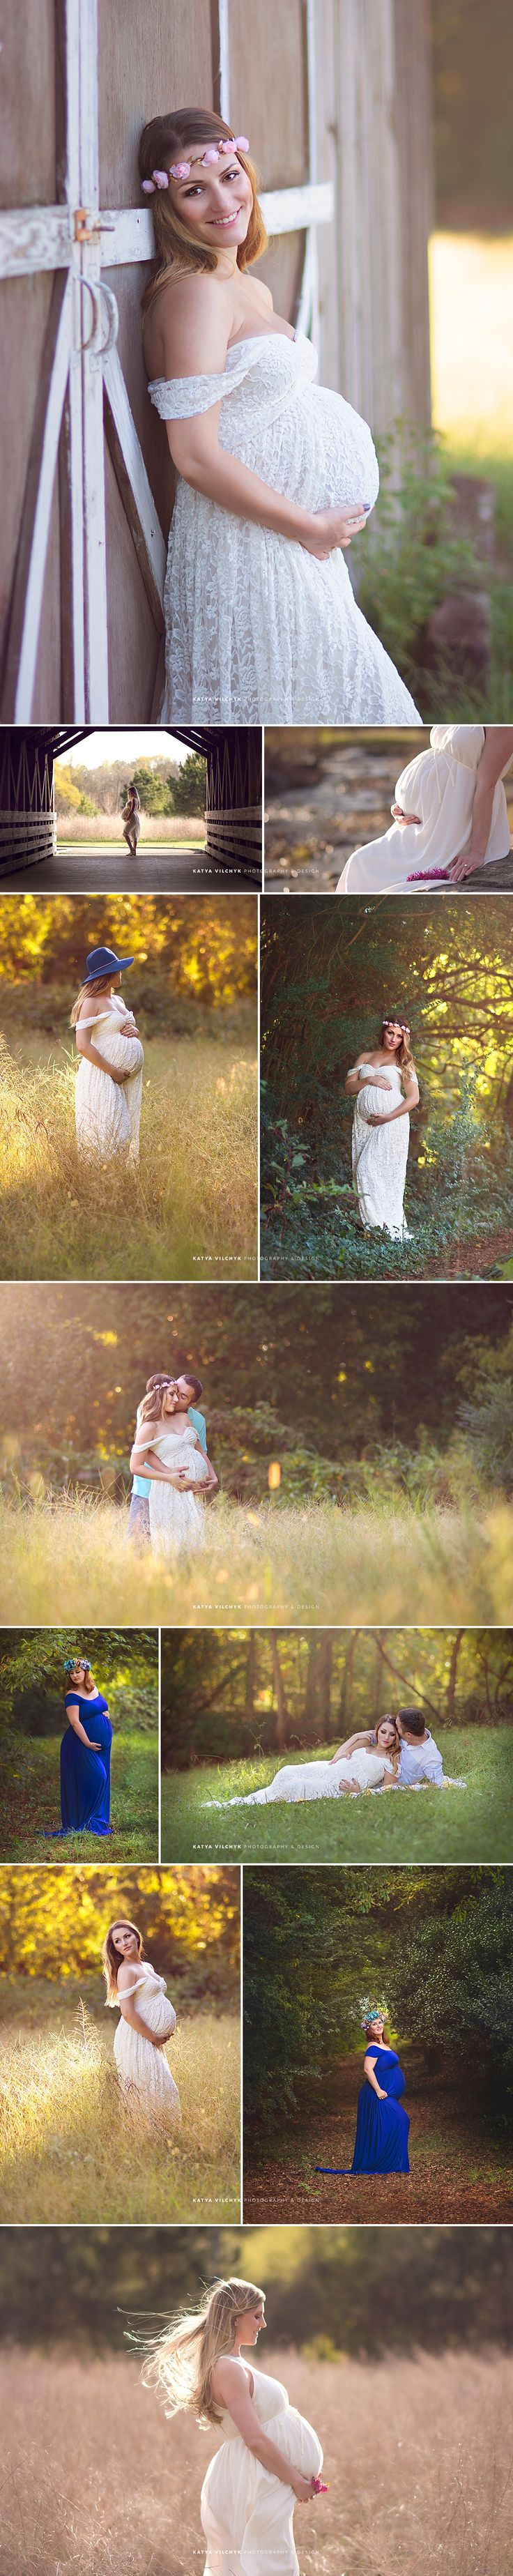 Roswell maternity photographer - katya vilchyk photography